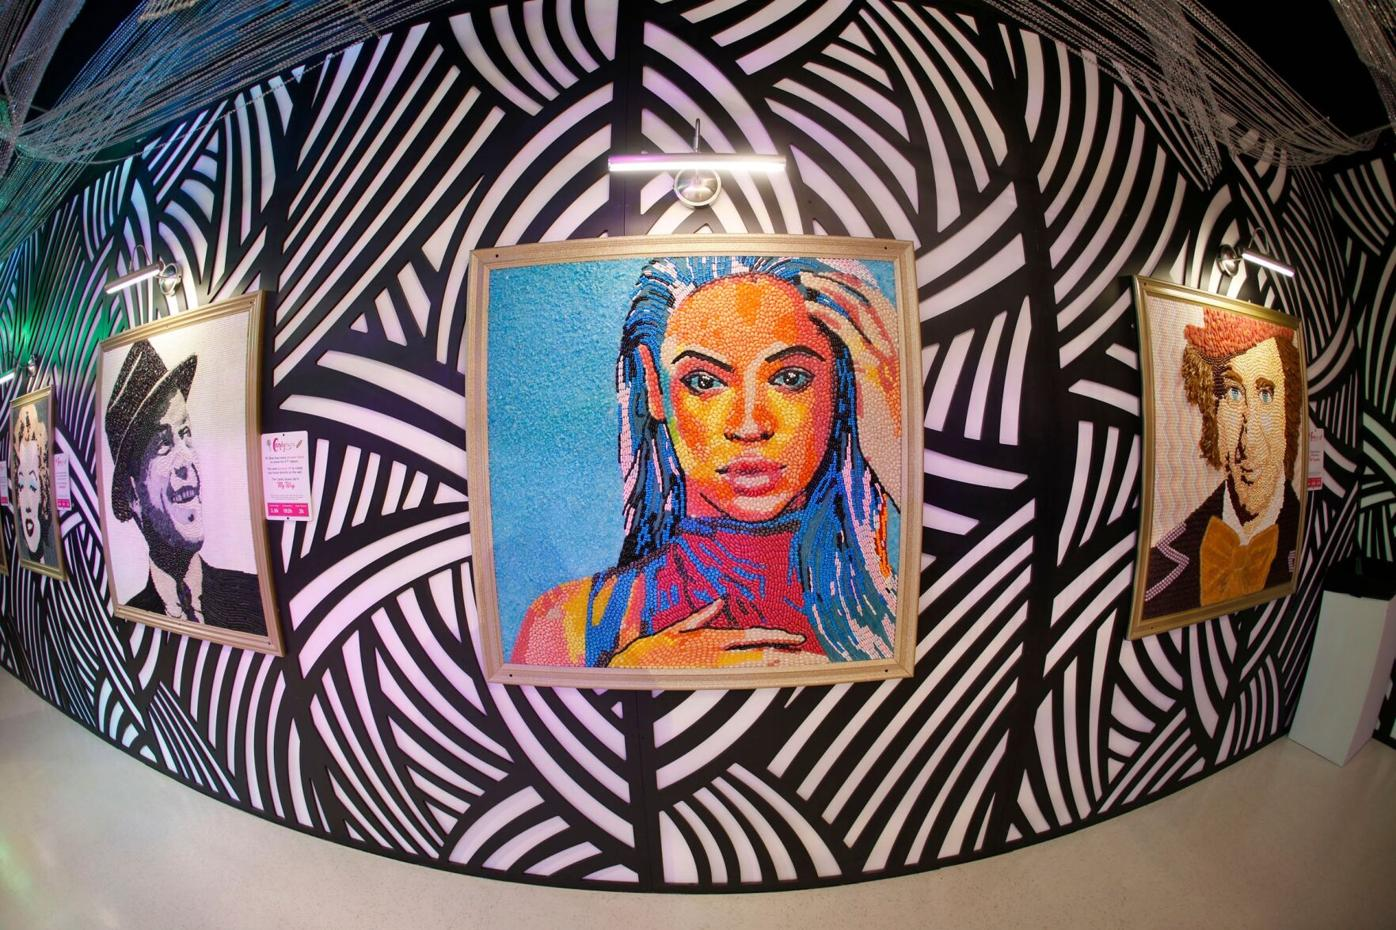 060221_MNS_Candytopia_001 paintings